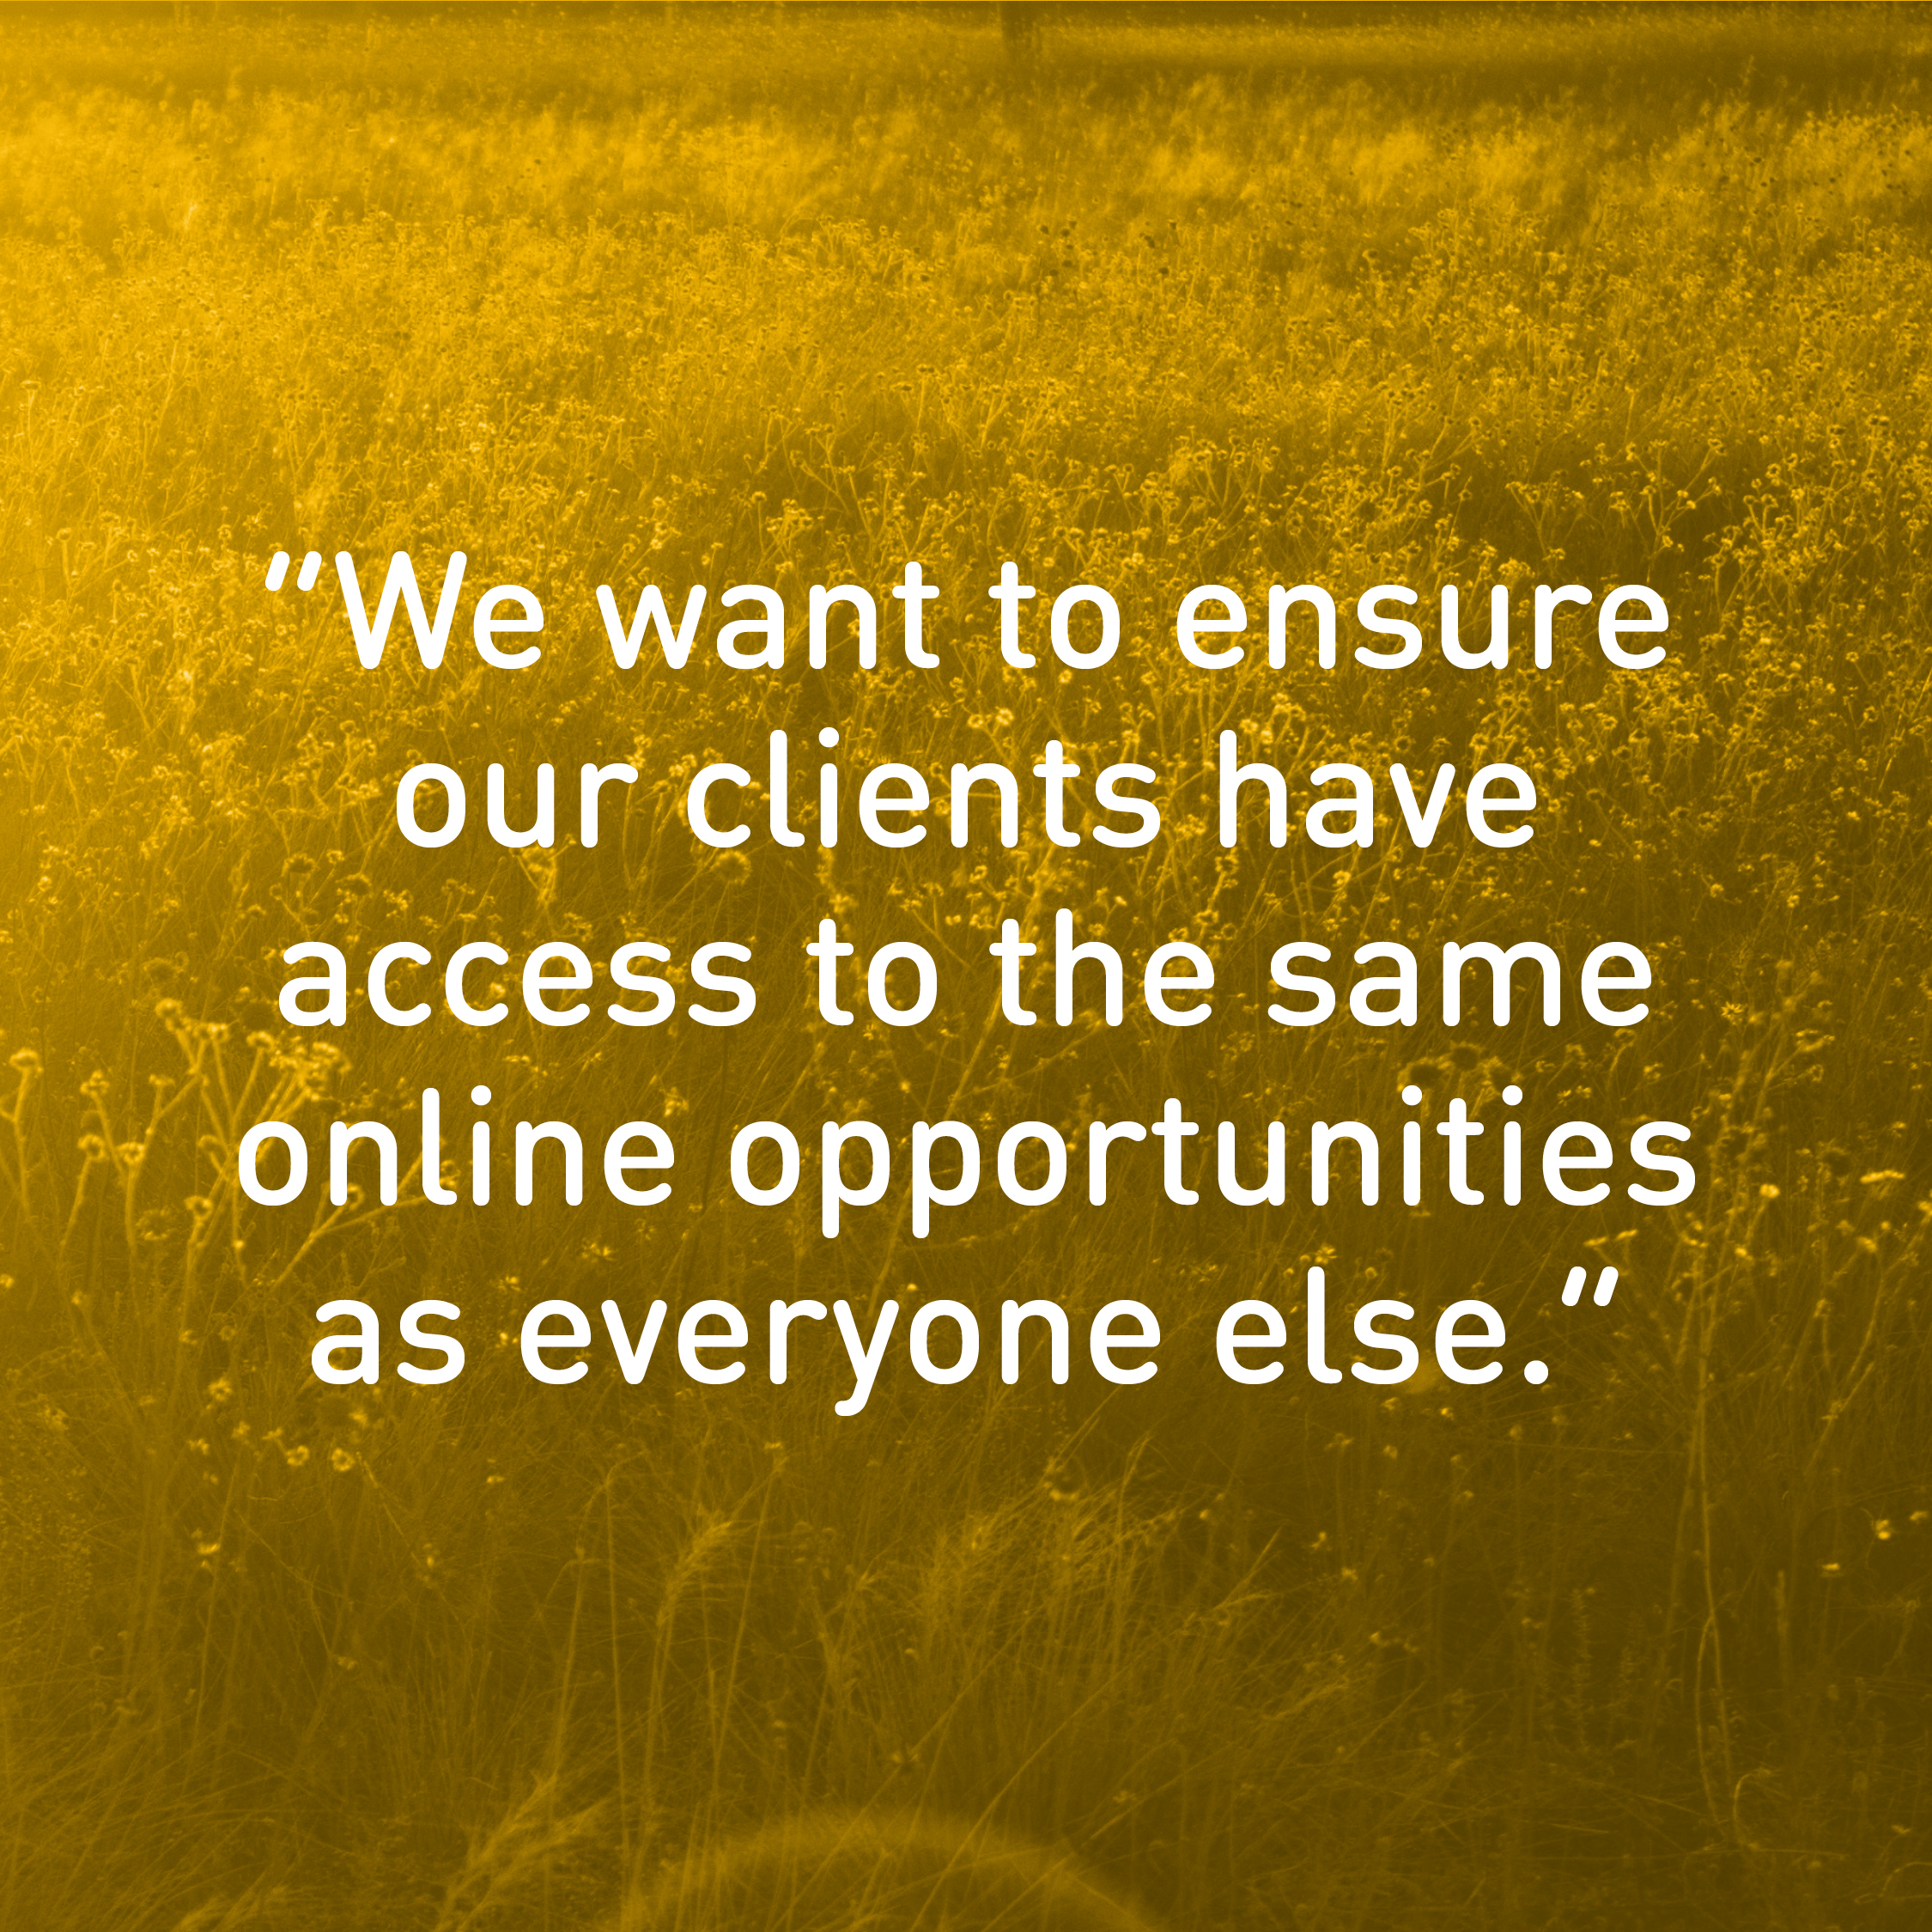 We want to ensure our clients have access to the same online opportunities as everyone else.